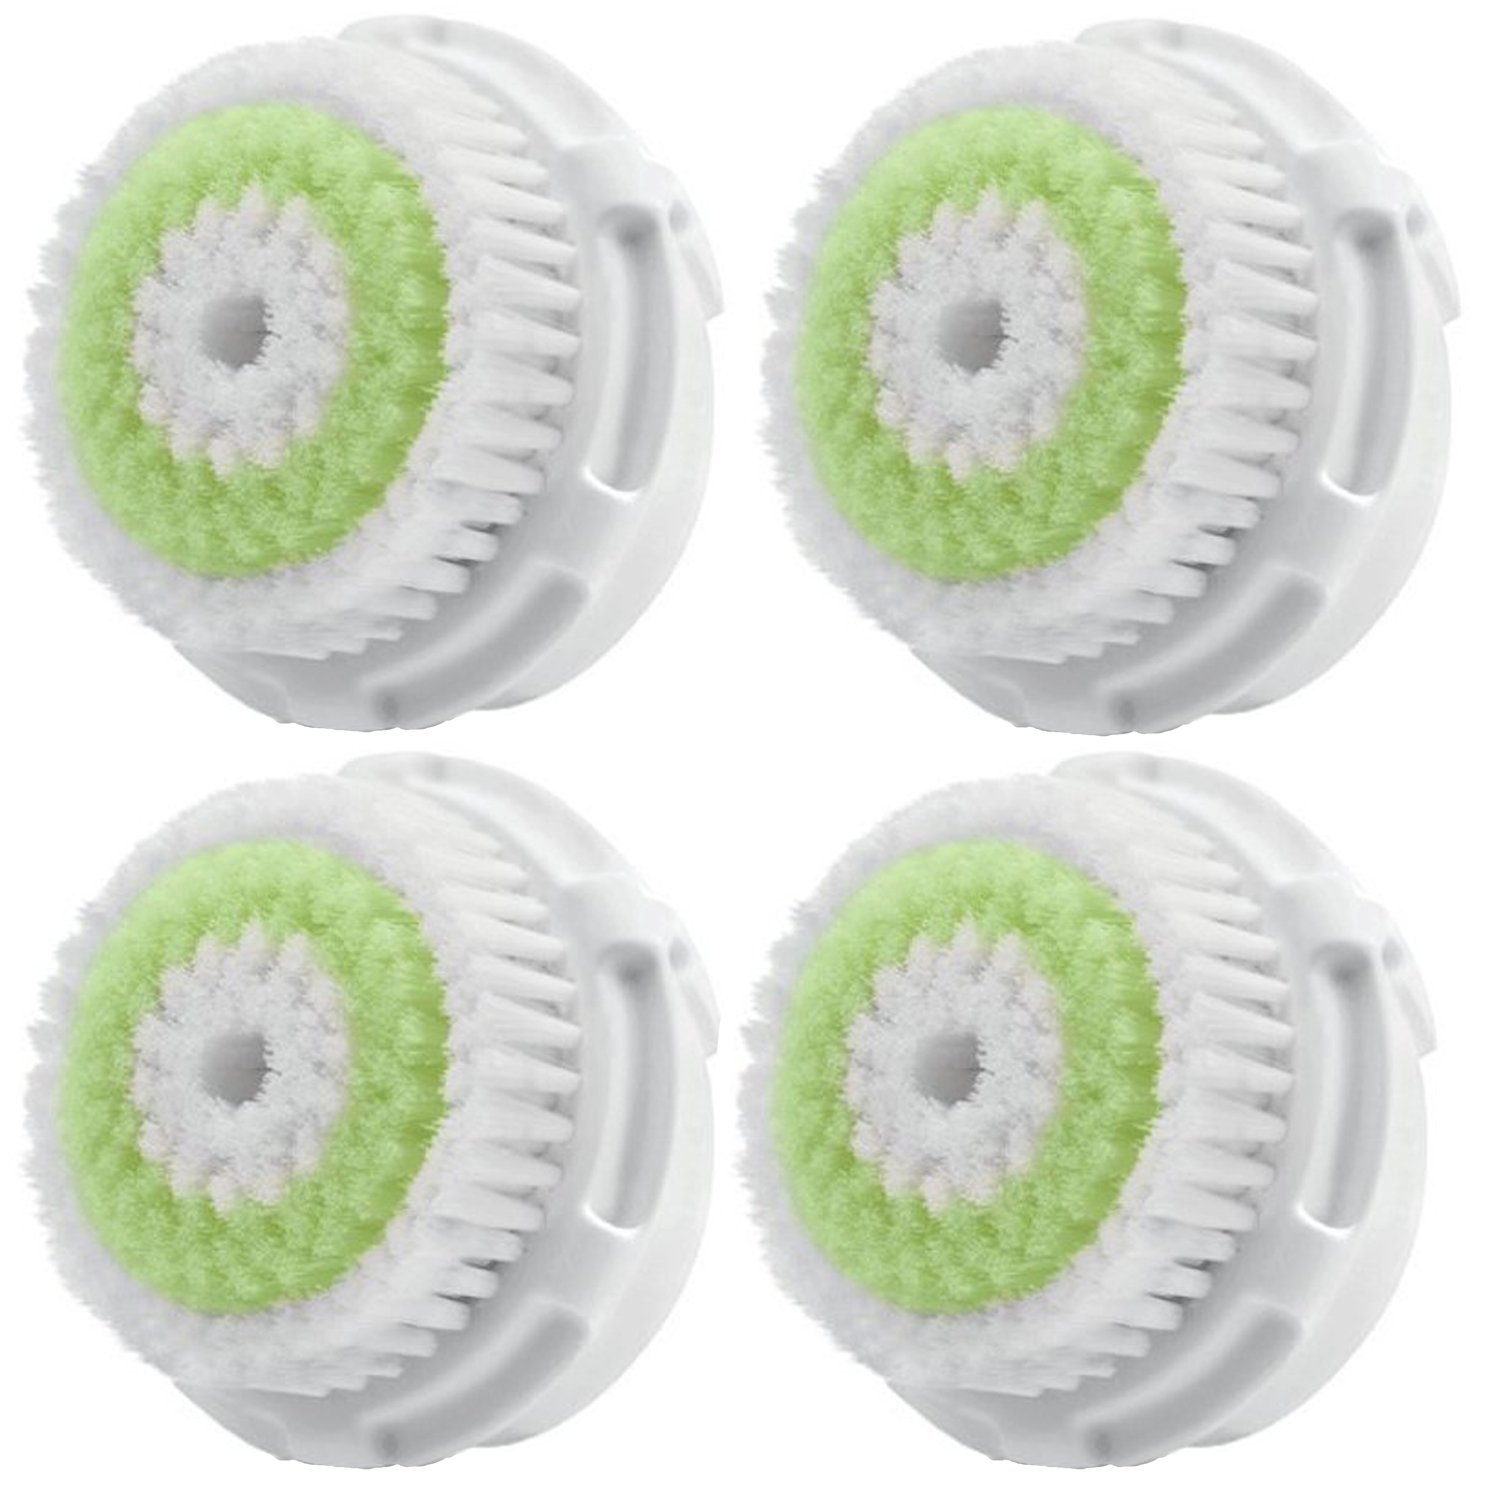 LSQtronics Acne Facial Cleansing Brush Heads for Clarisonic. Face Cleansing Brush Heads for Daily Skin Care. Compatible with Clarisonic MIA, MIA 2, ARIA, PRO and PLUS Cleansing Systems (4-Pack Brush Head for Acne Facial Cleansing)